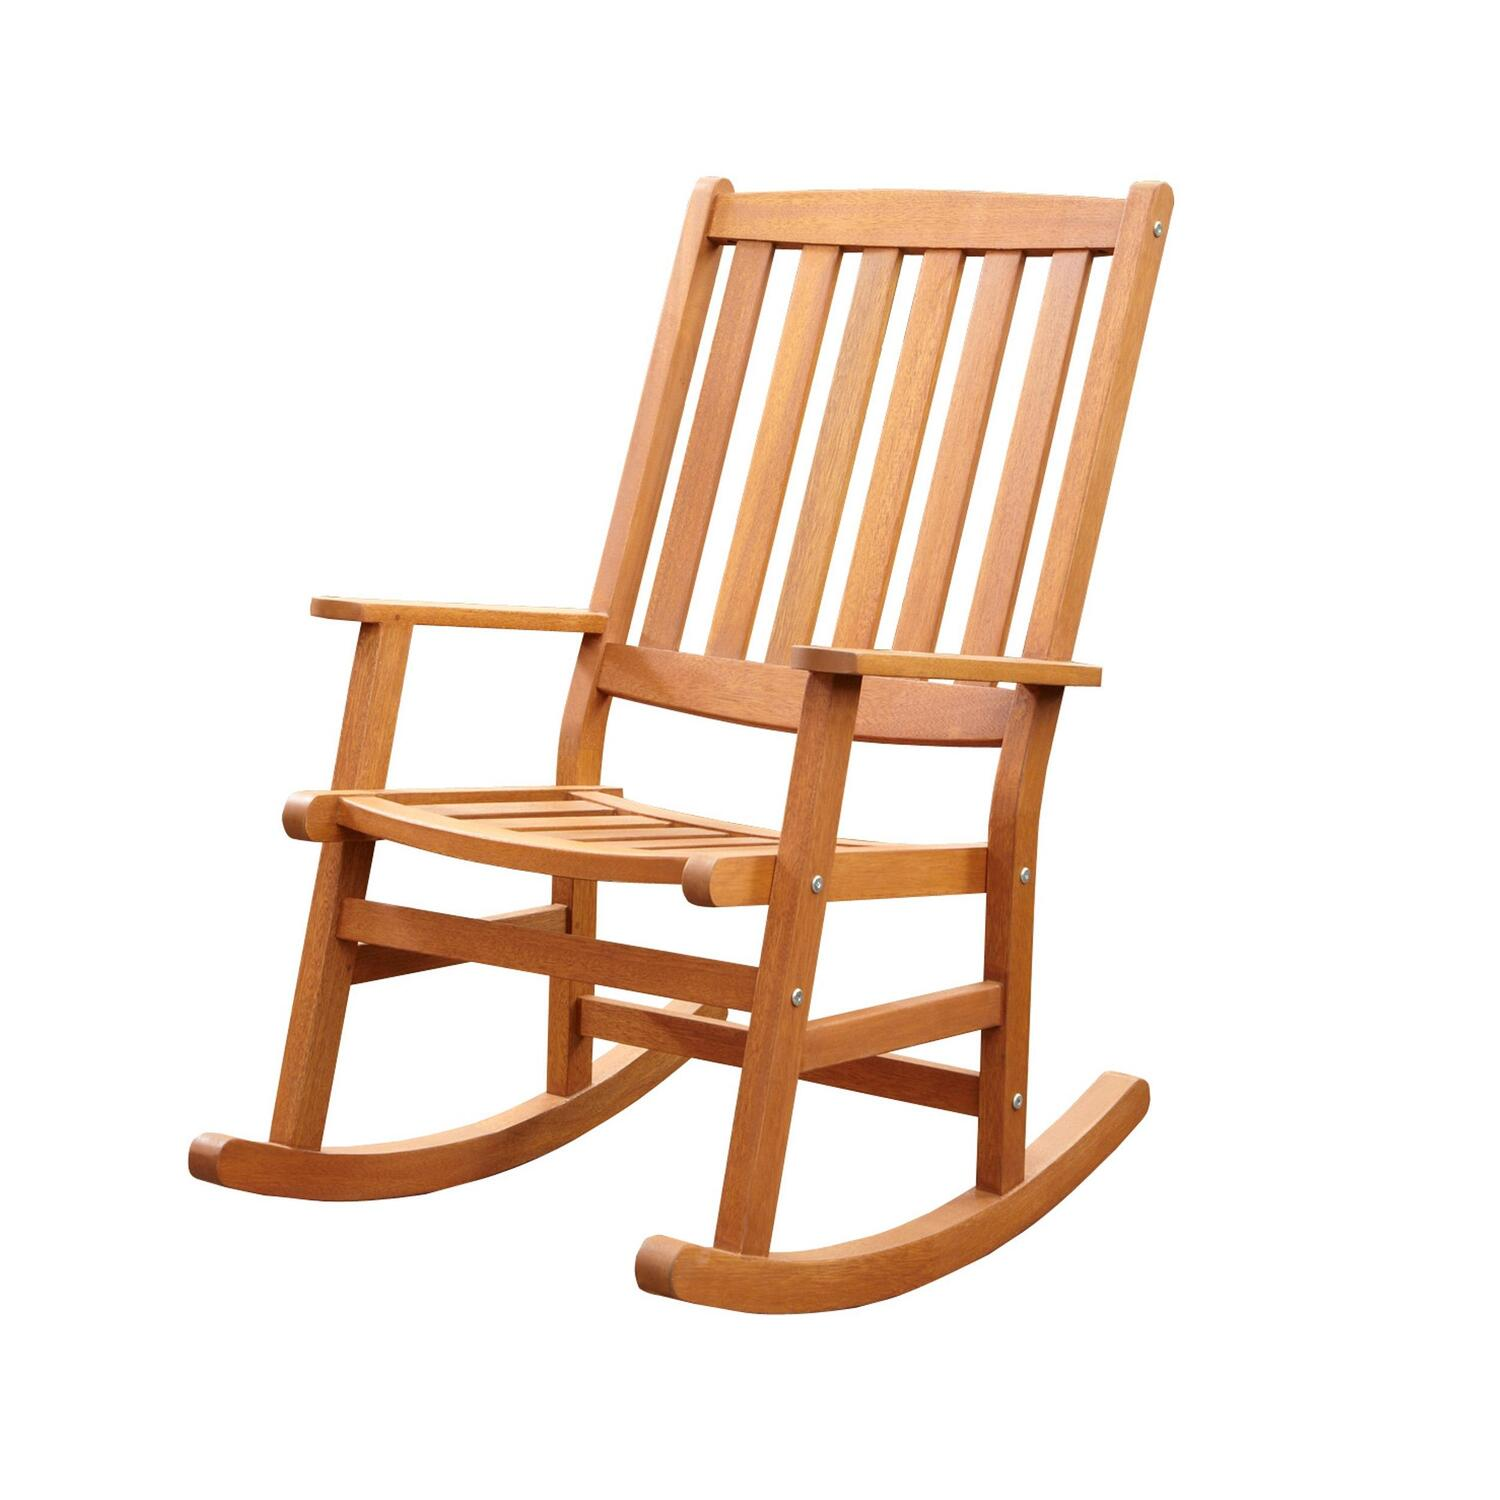 Home styles 5660 584 bali hai outdoor rocking chair for Rocking chair